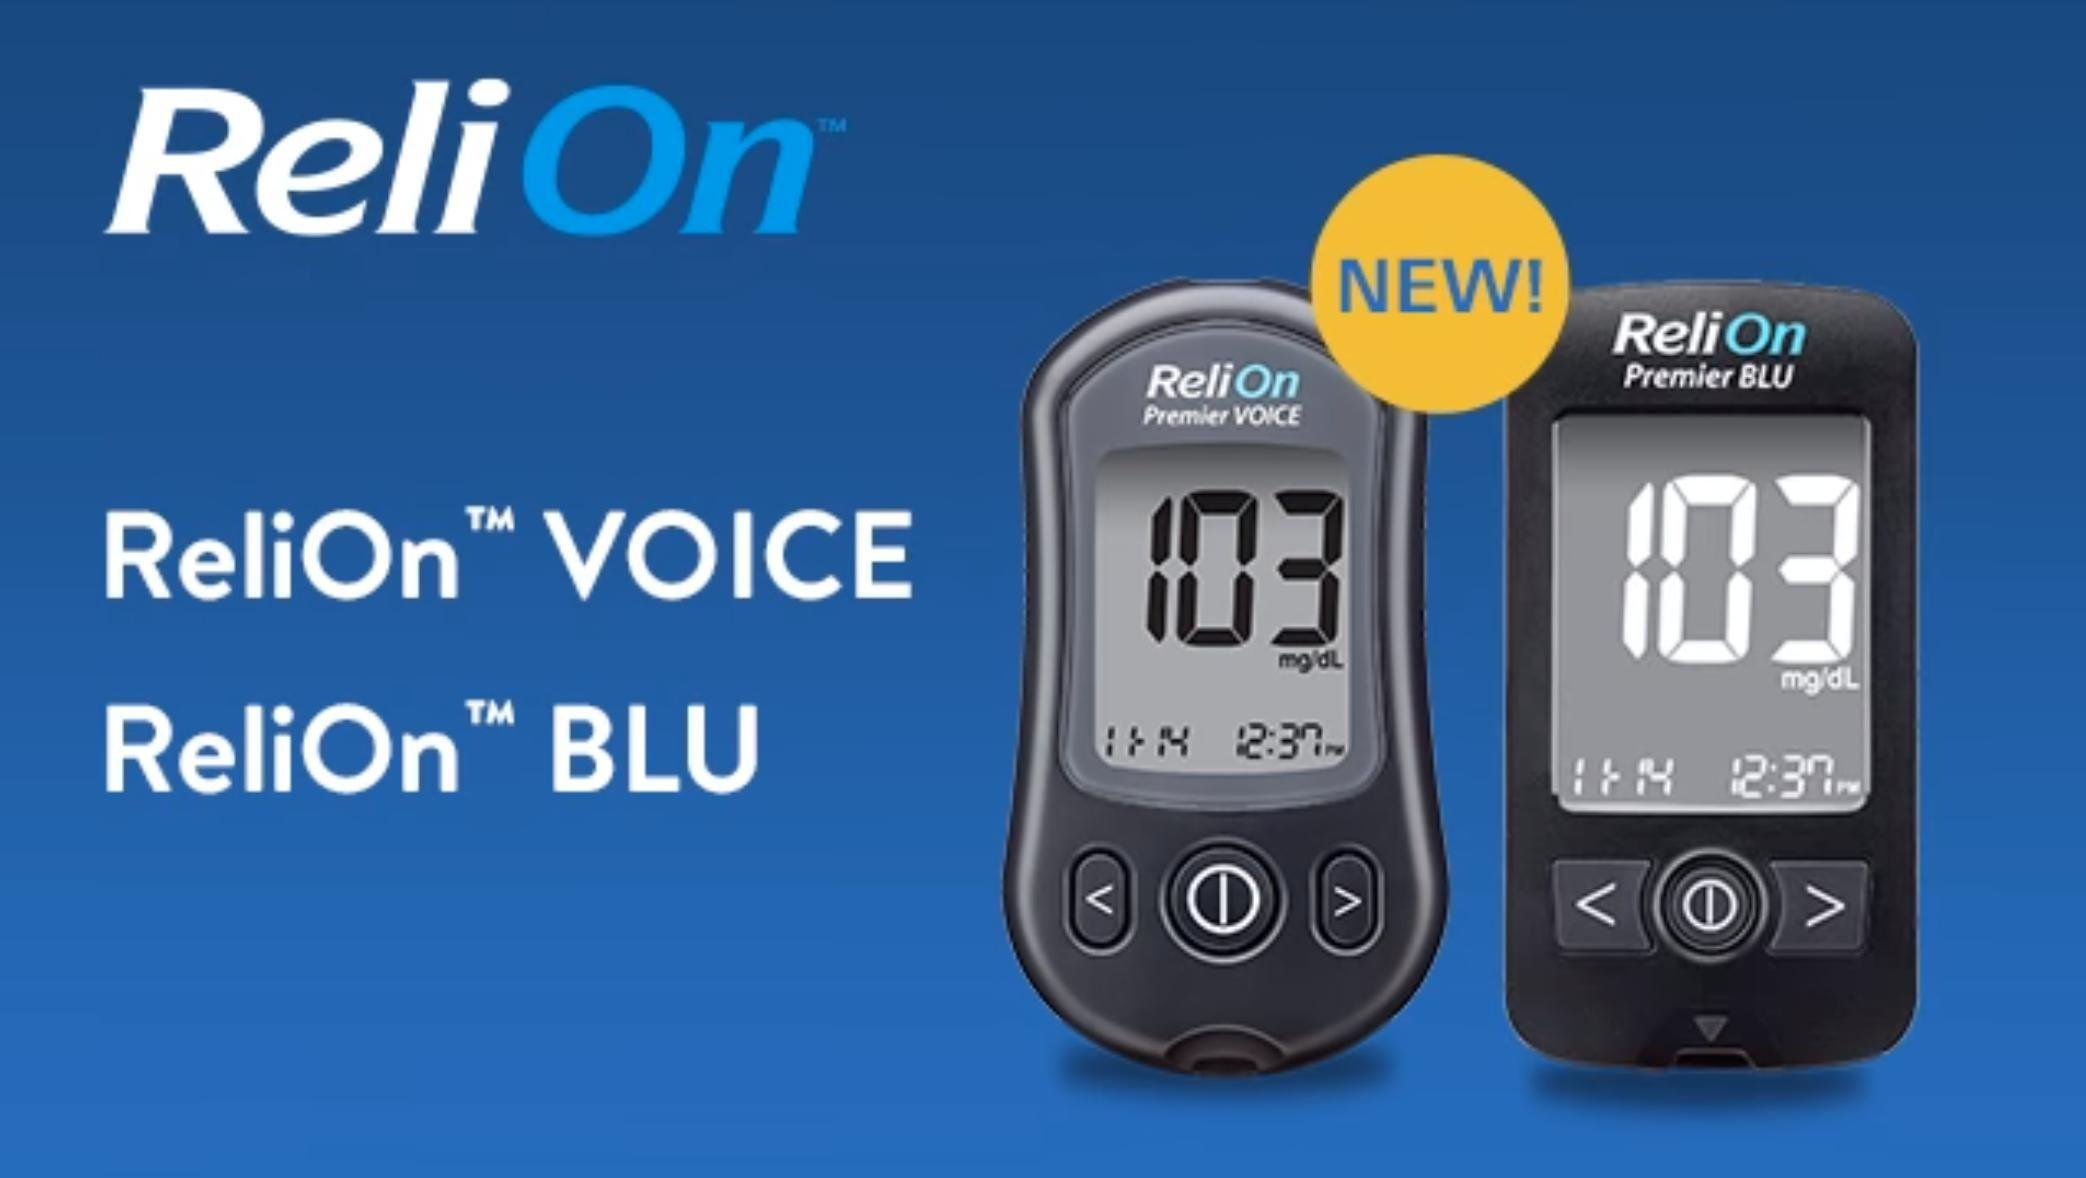 Blood Glucose Meter Review: Relion Premier Blu And Voice